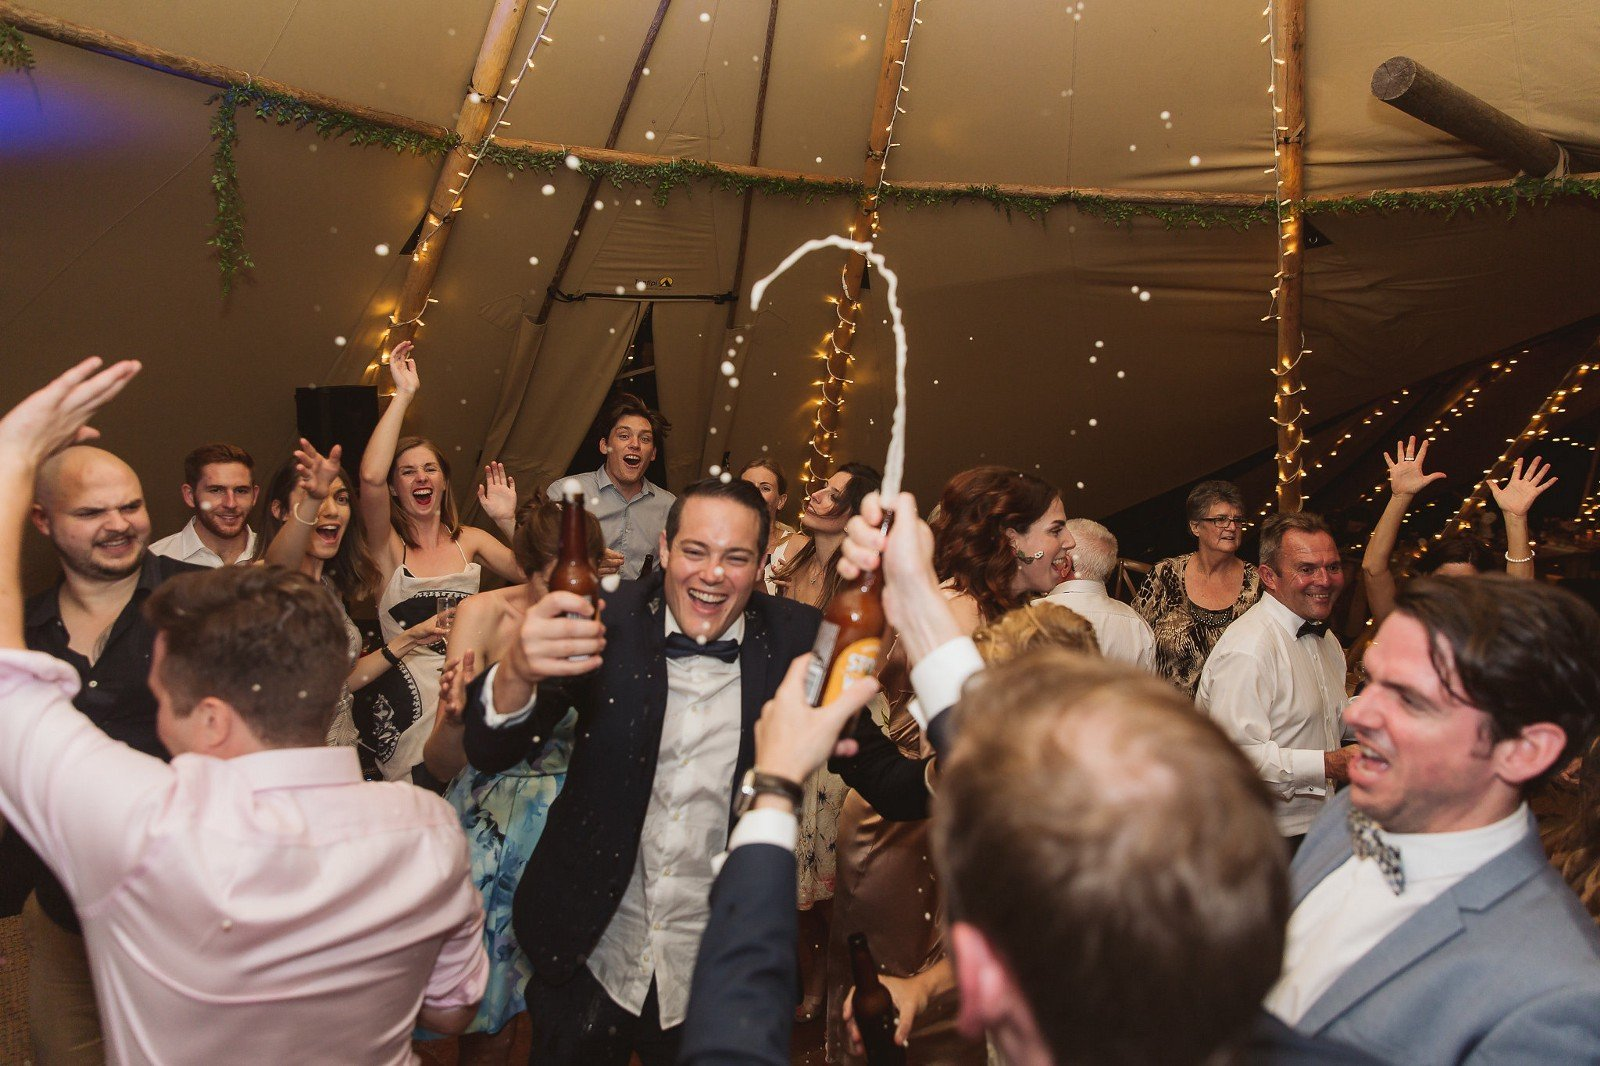 3 Additional Tips To Get MORE Value from Your Wedding DJ (Part 2)